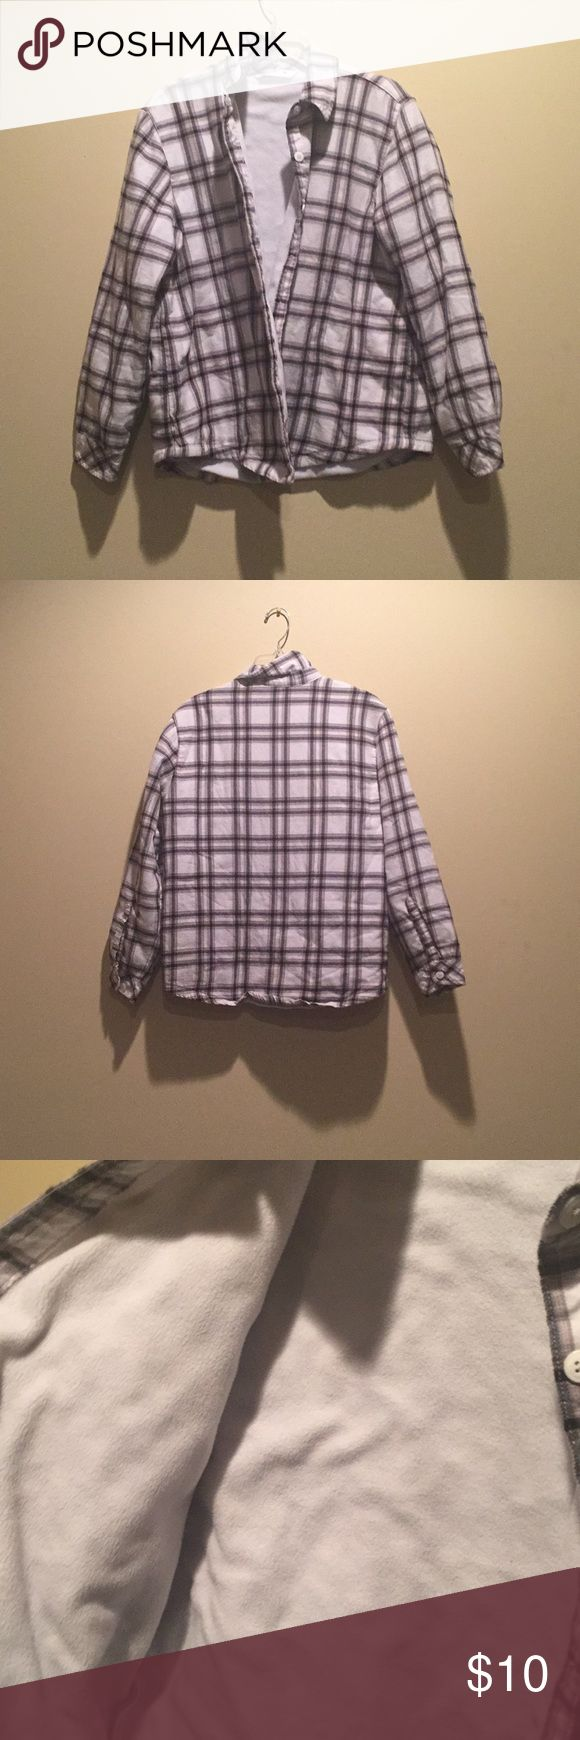 Plaid women's button up jacket Lined in fleece Designed for cold weather and staying warm Button up  Rarely worn  Great condition Riders by Lee Jackets & Coats